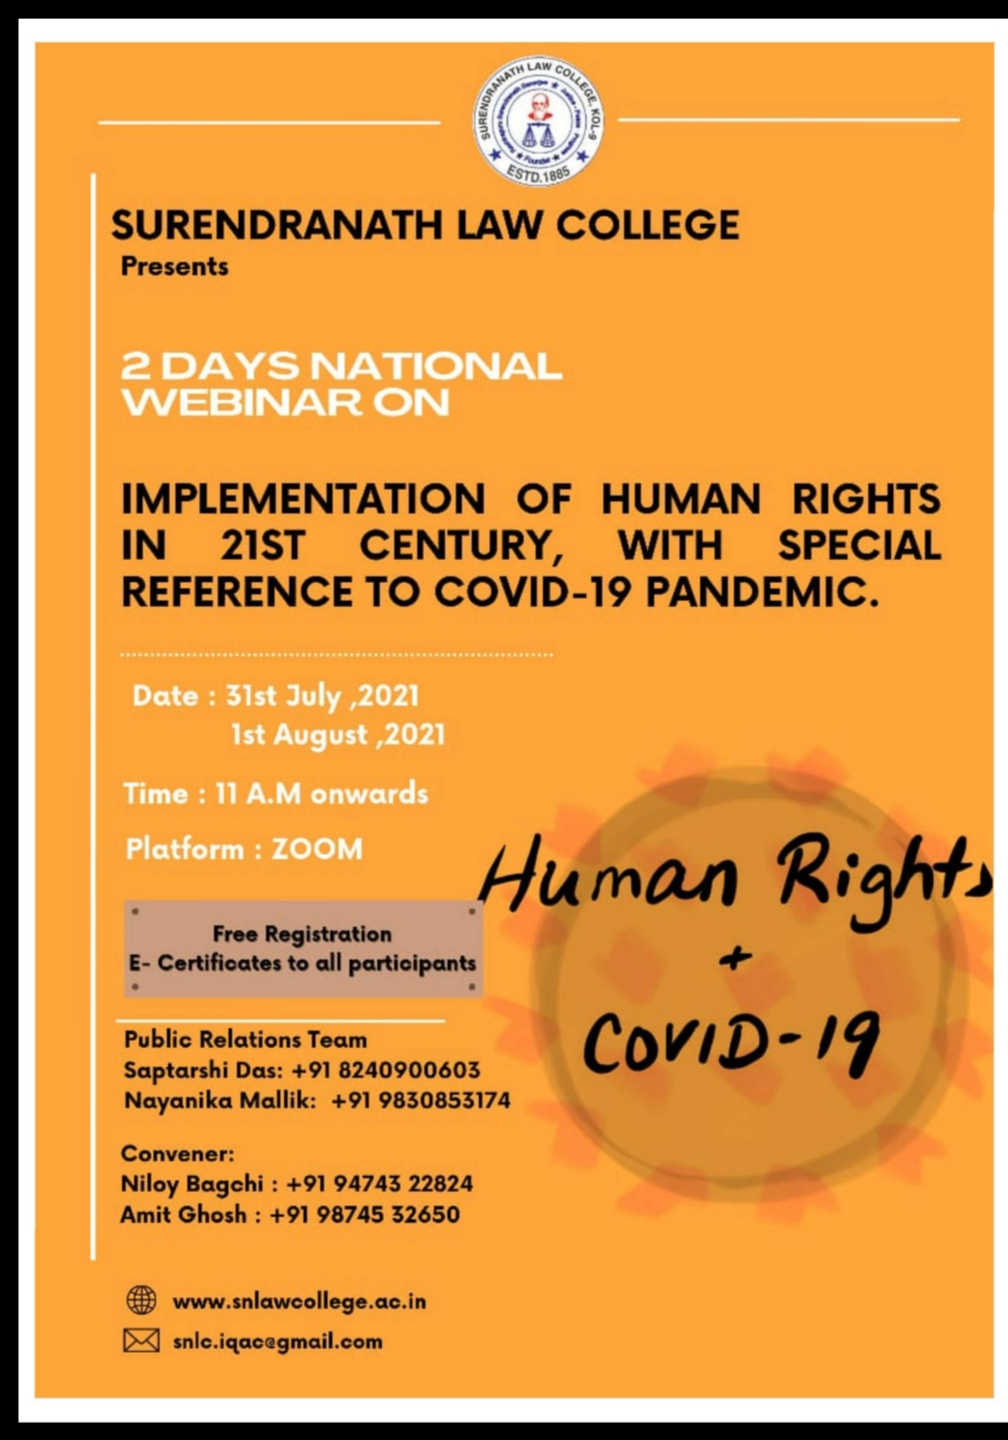 TWO DAYS NATIONAL WEBINAR ON IMPLEMENTATION OF HUMAN RIGHTS IN 21ST CENTURY, WITH  SPECIAL REFERENCE TO COVID-19 PANDEMIC